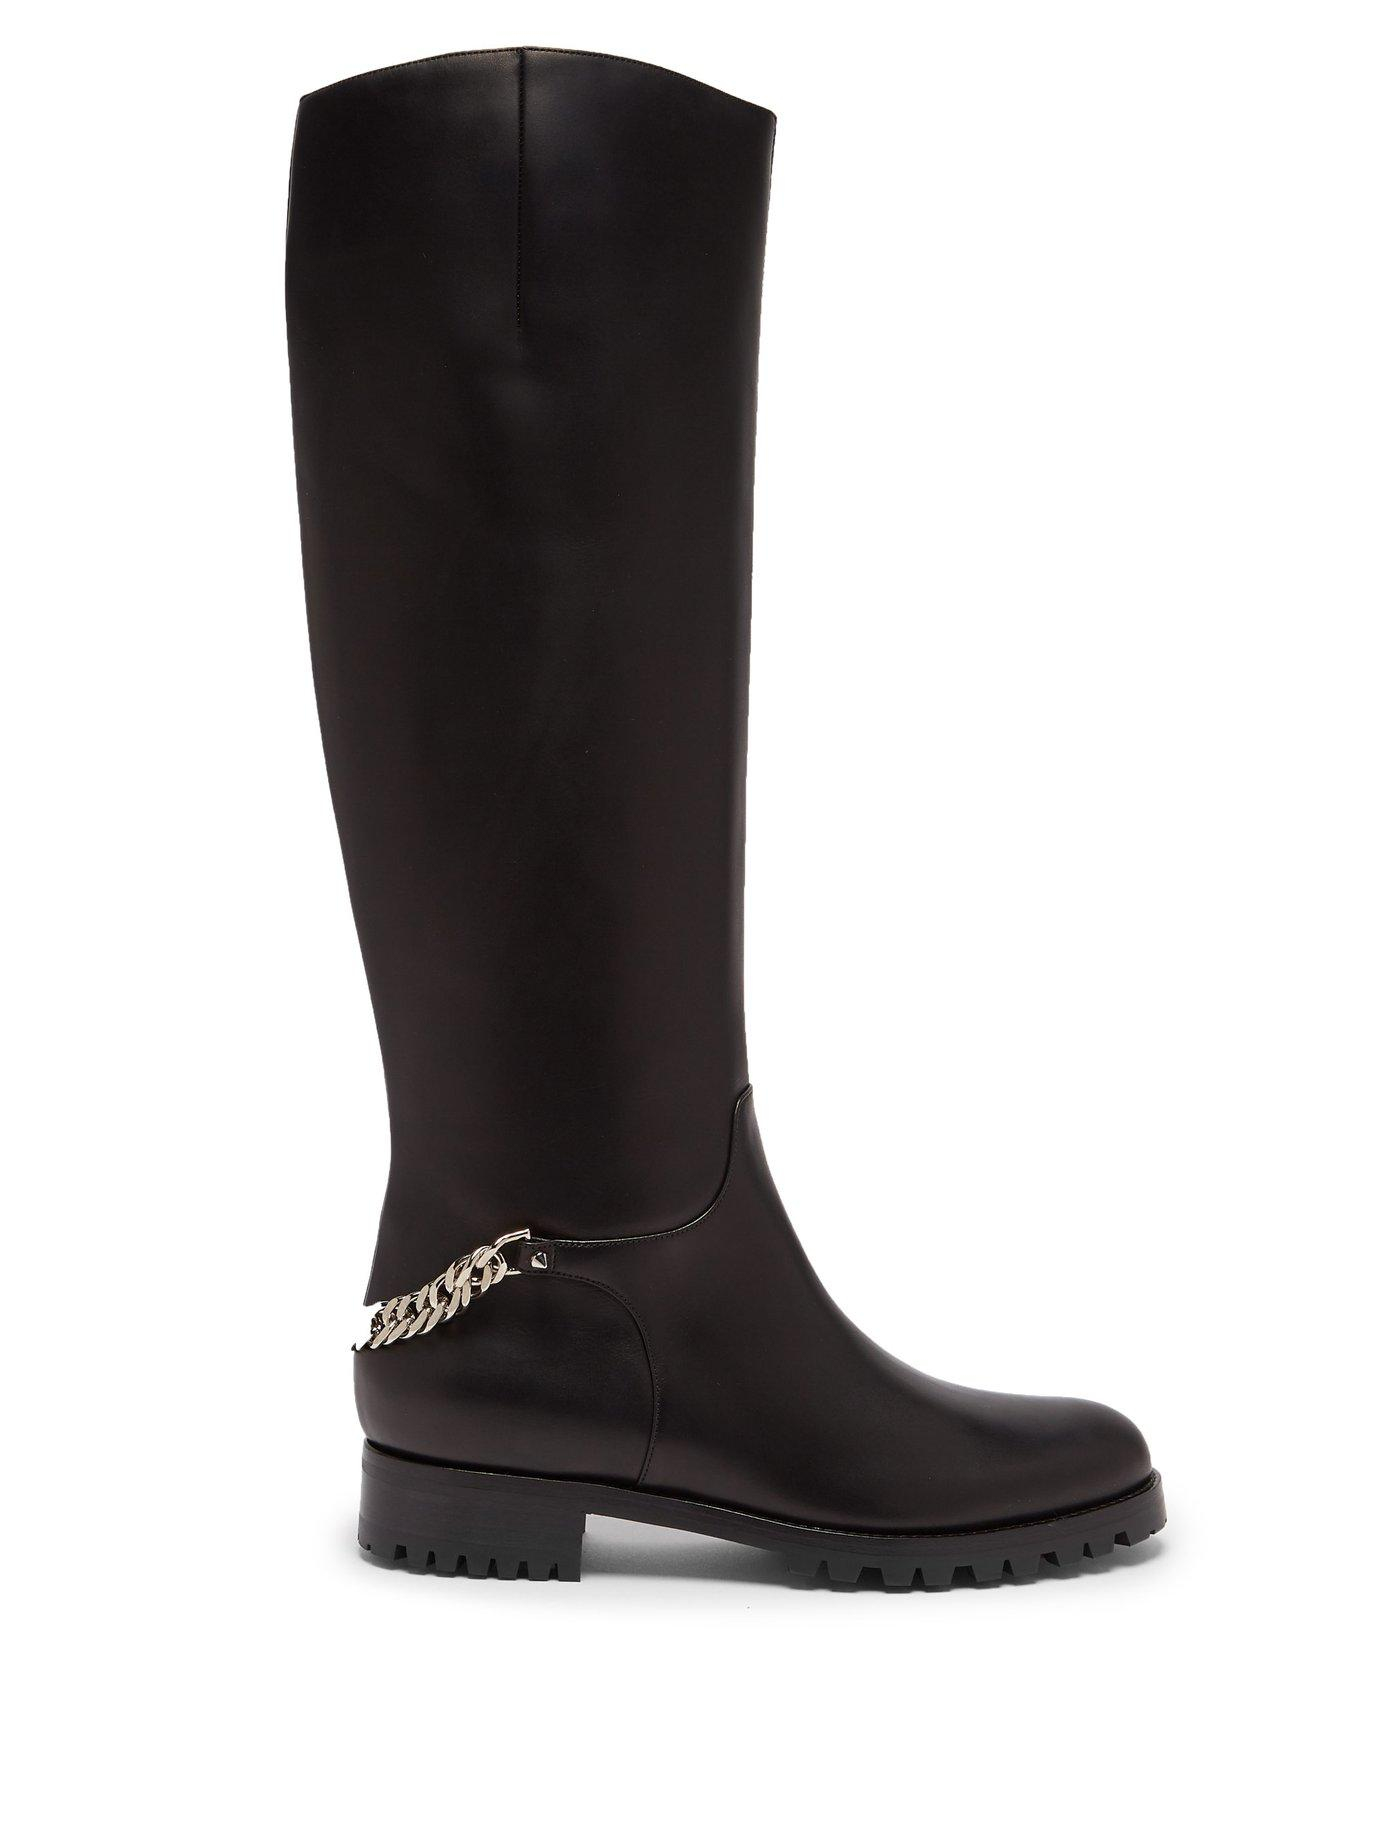 73038ebabc1 Croche Cate Red Sole Knee Boot in Black